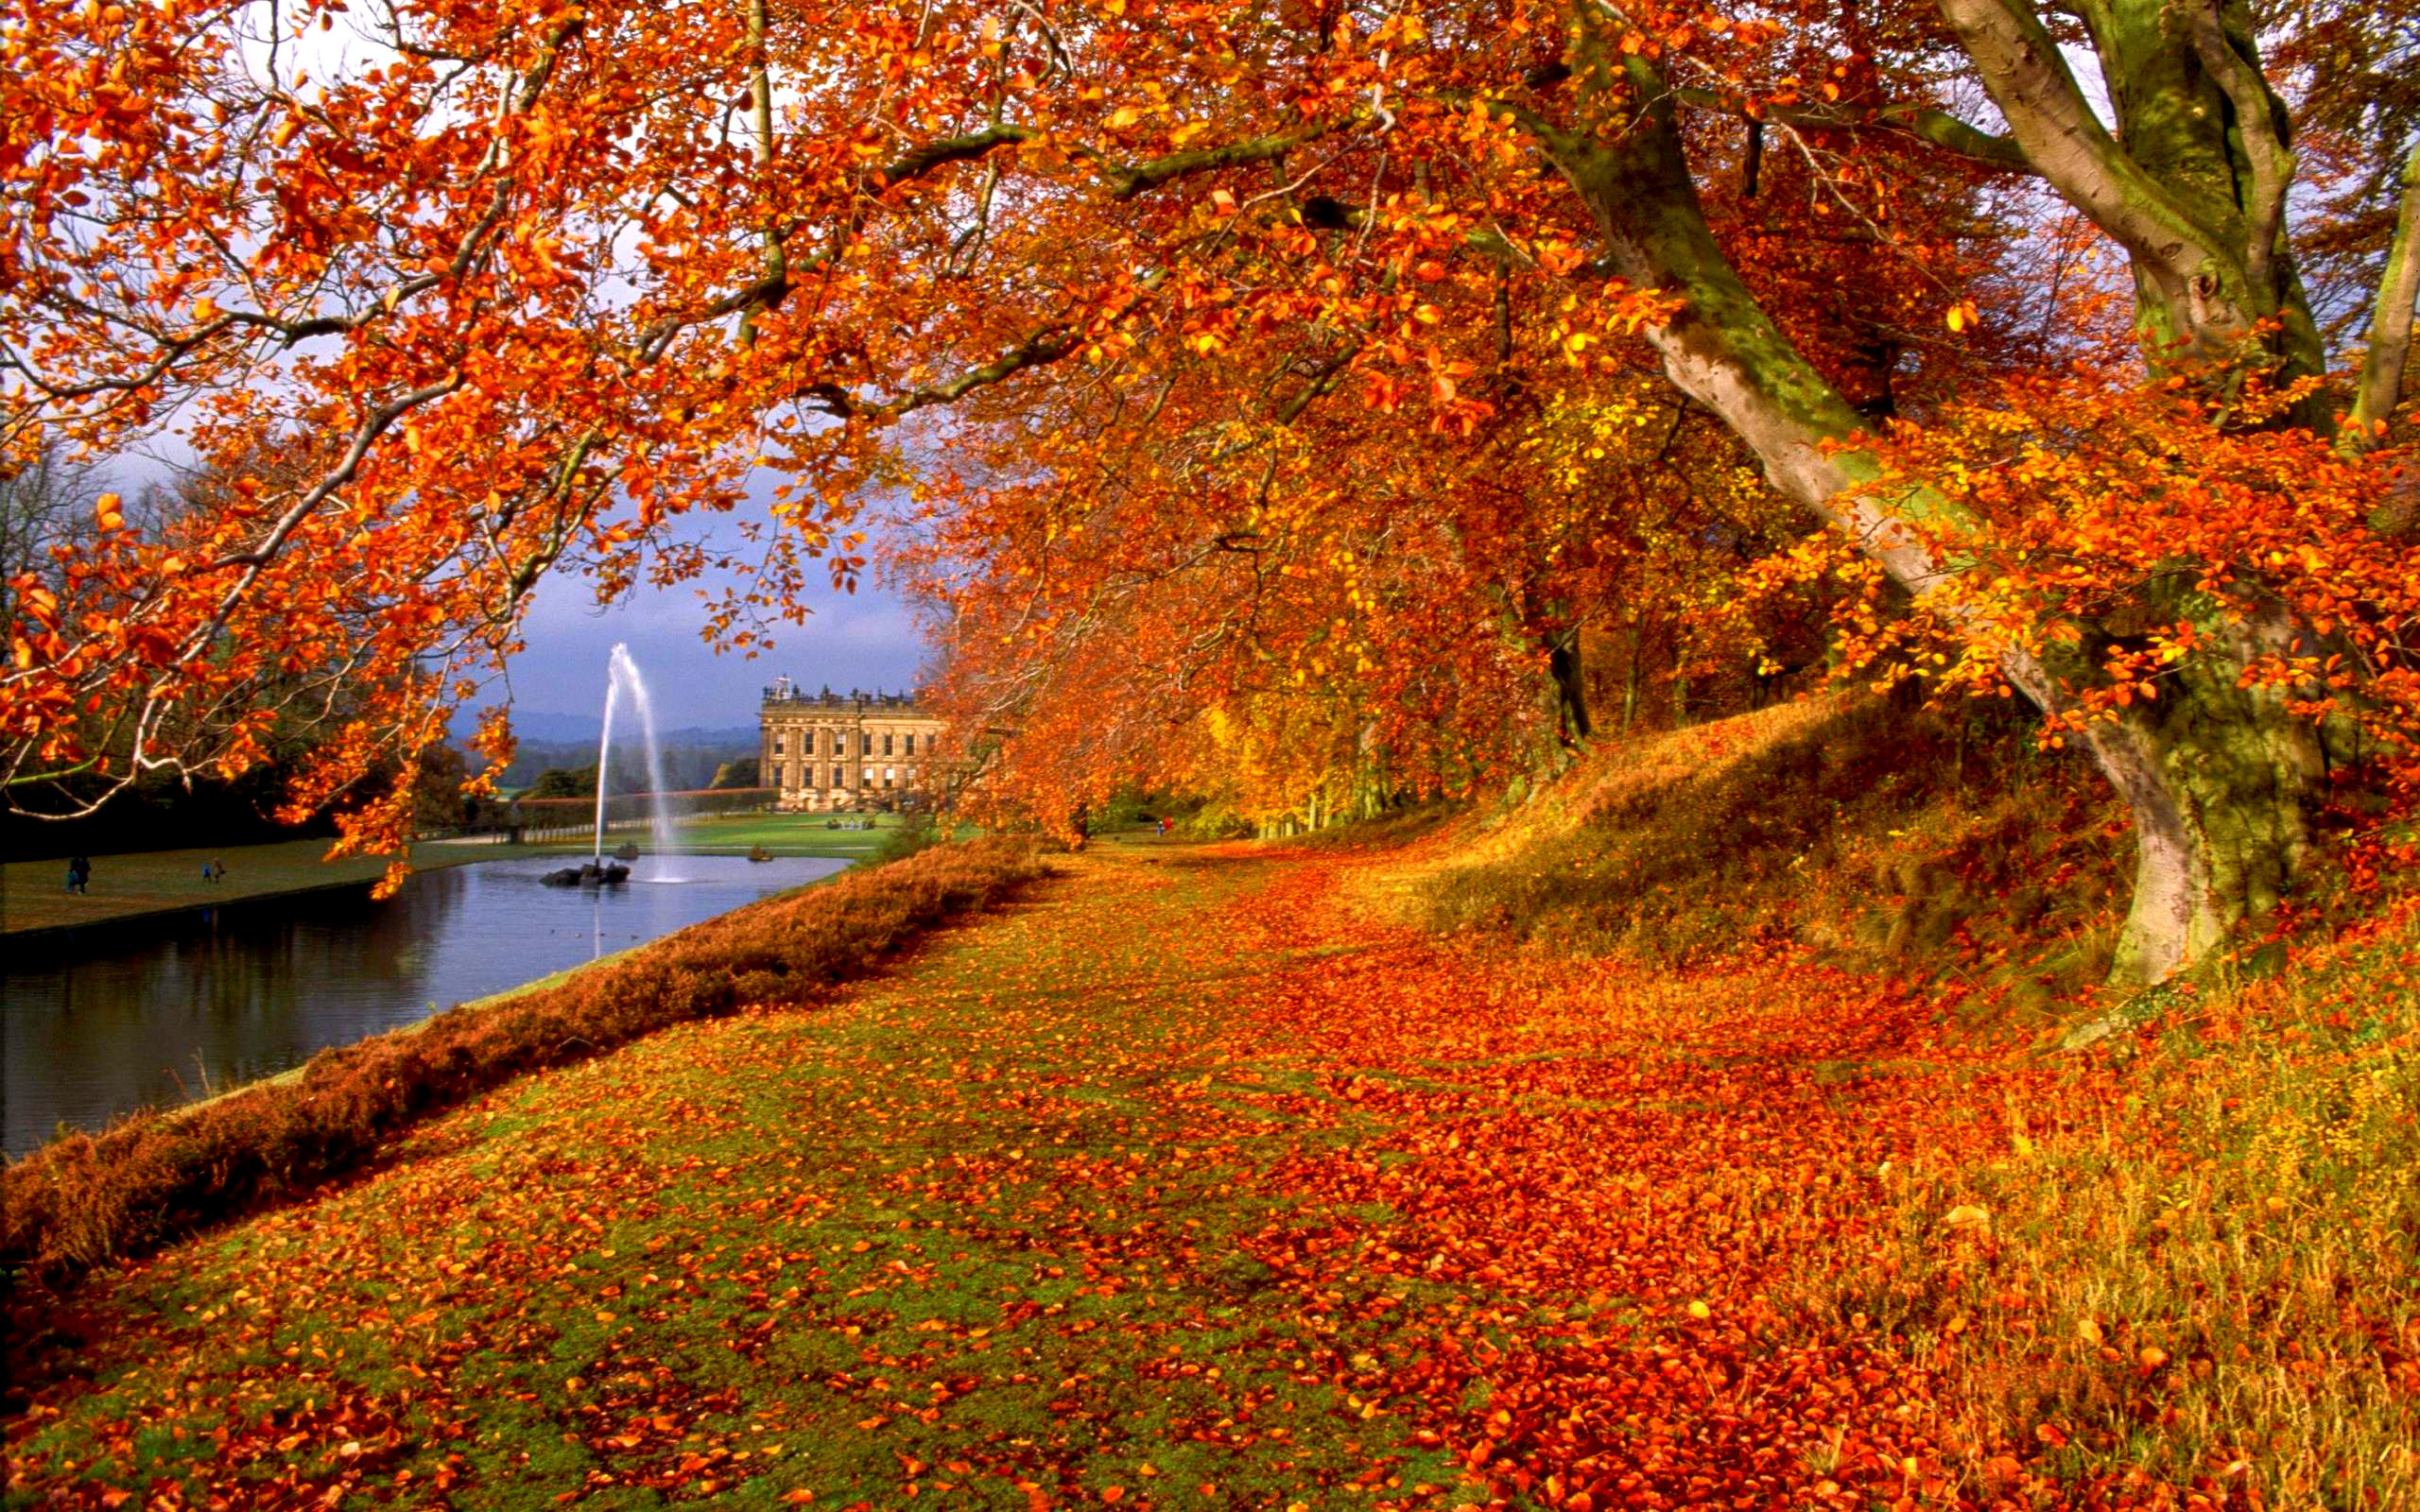 Falling Leaves Live Wallpaper For Android Autumn Screen Wallpaper 64 Images